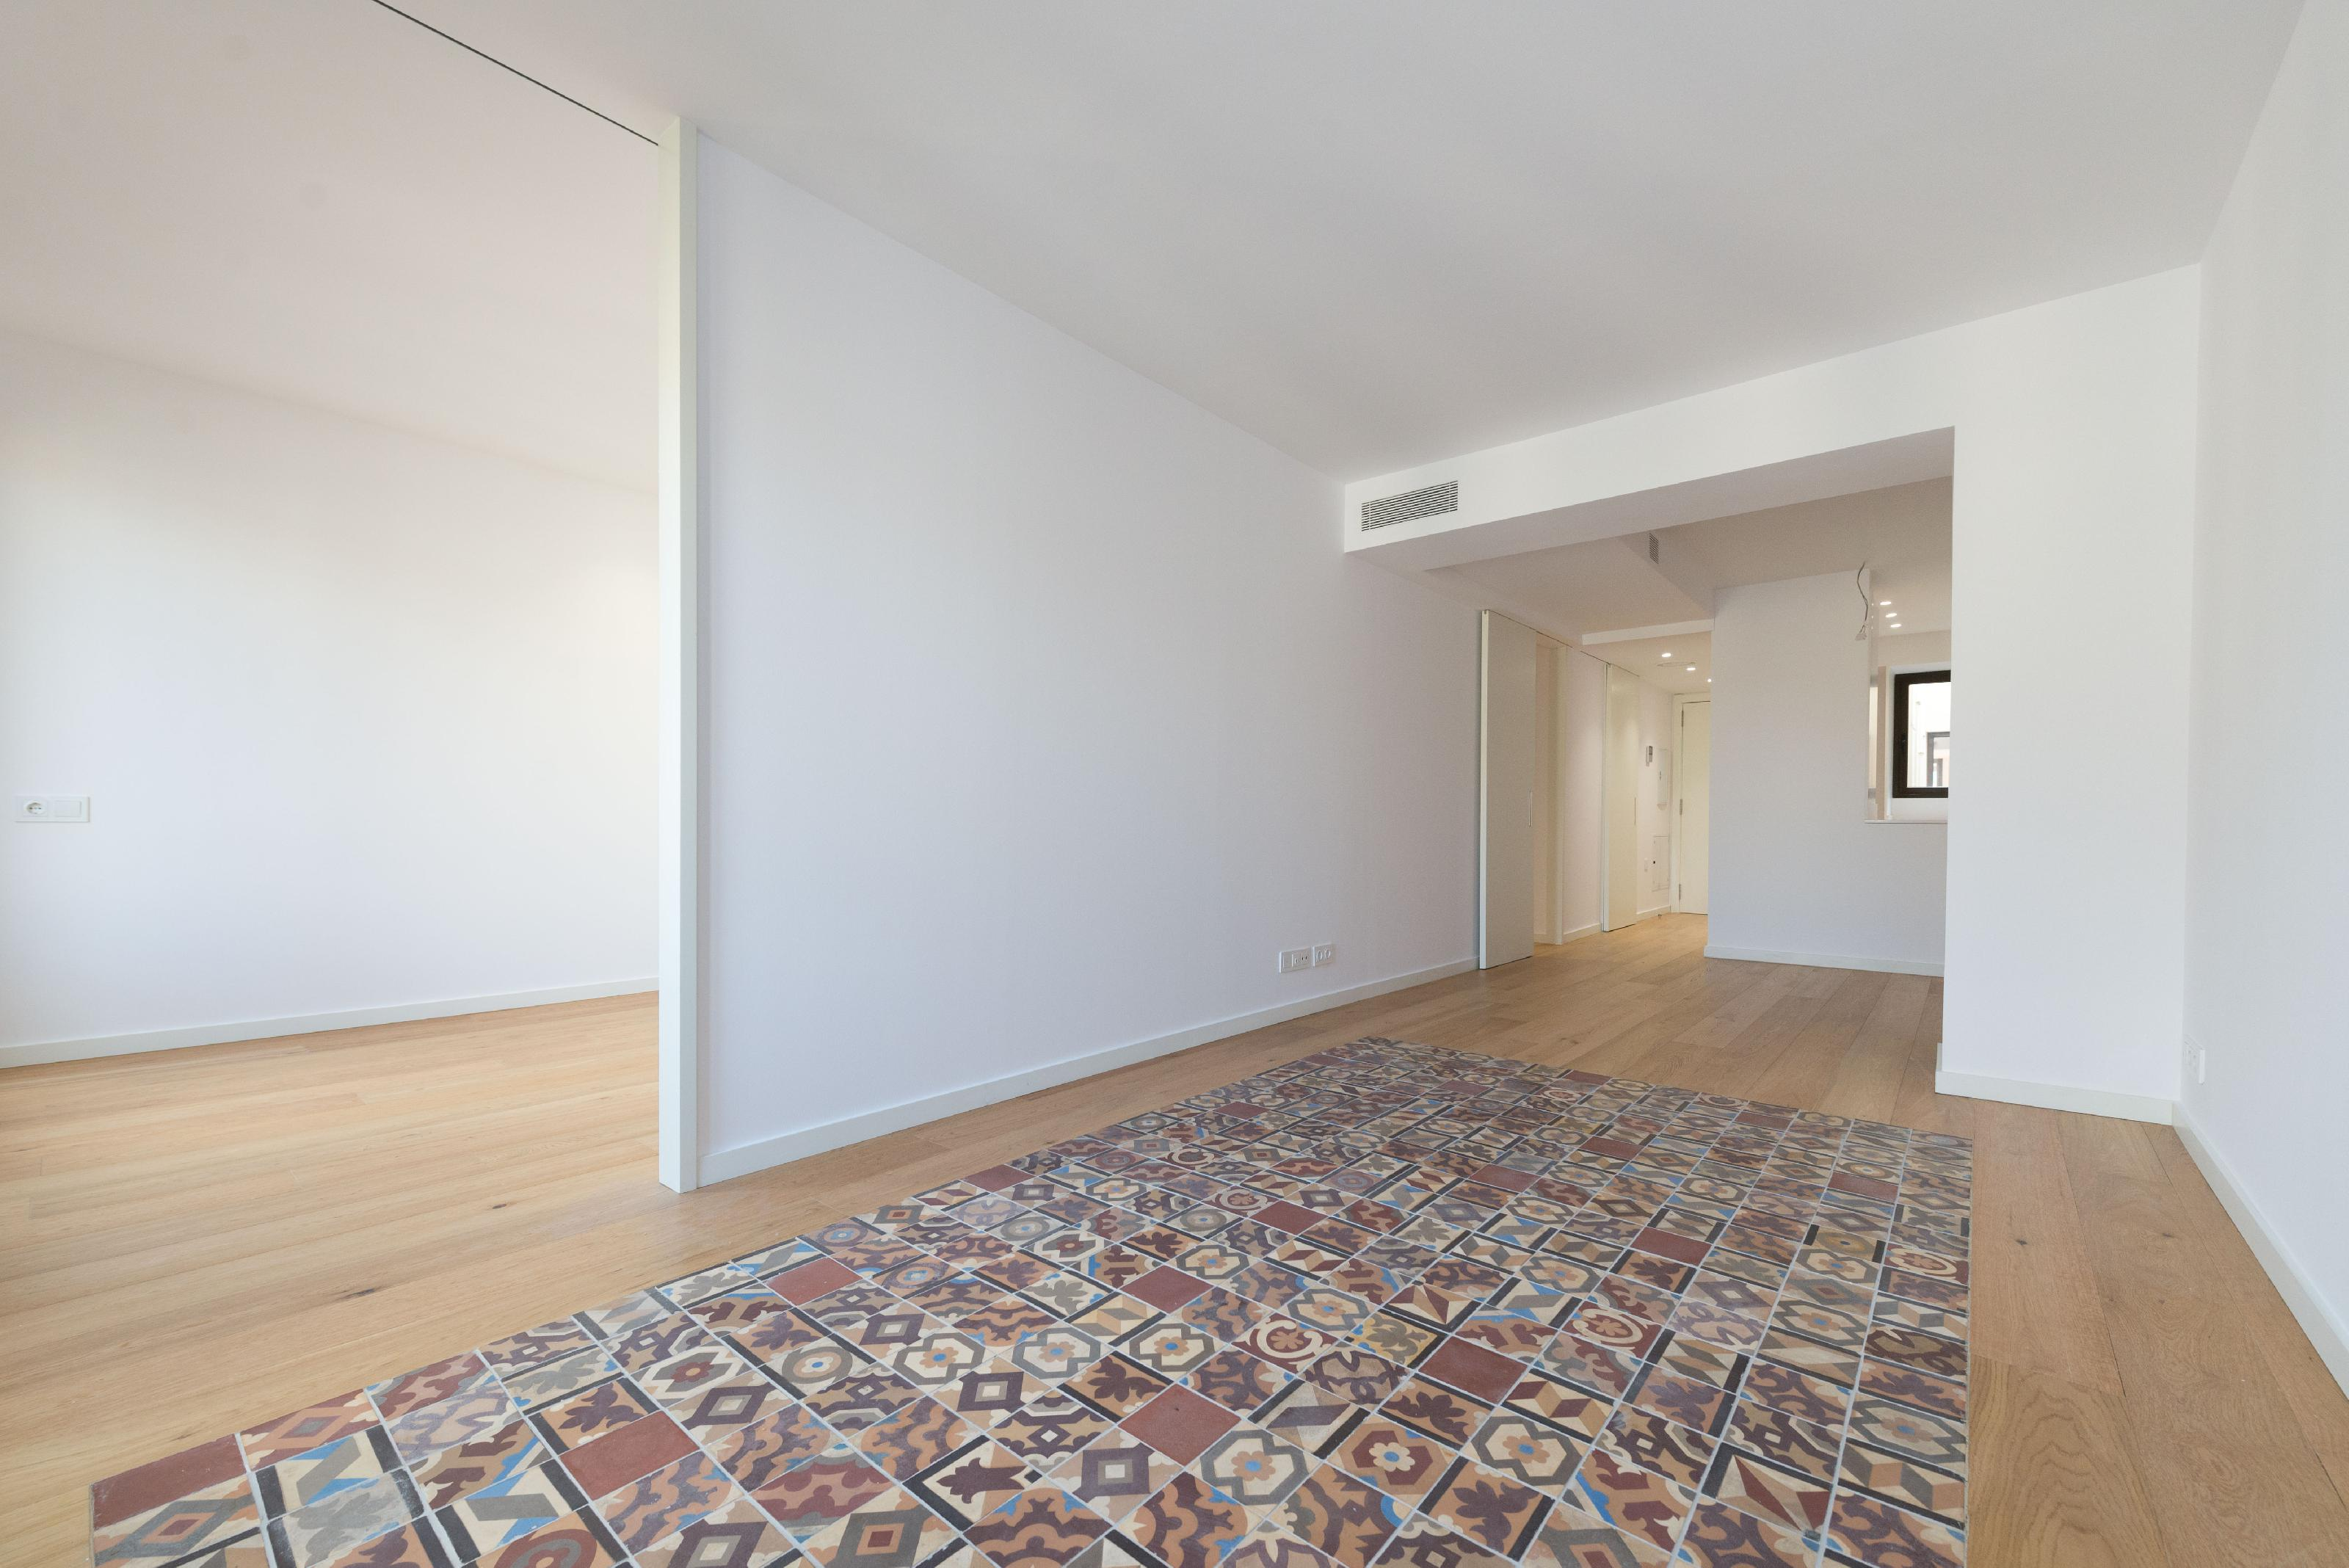 236358 Flat for sale in Eixample, Old Left Eixample 1